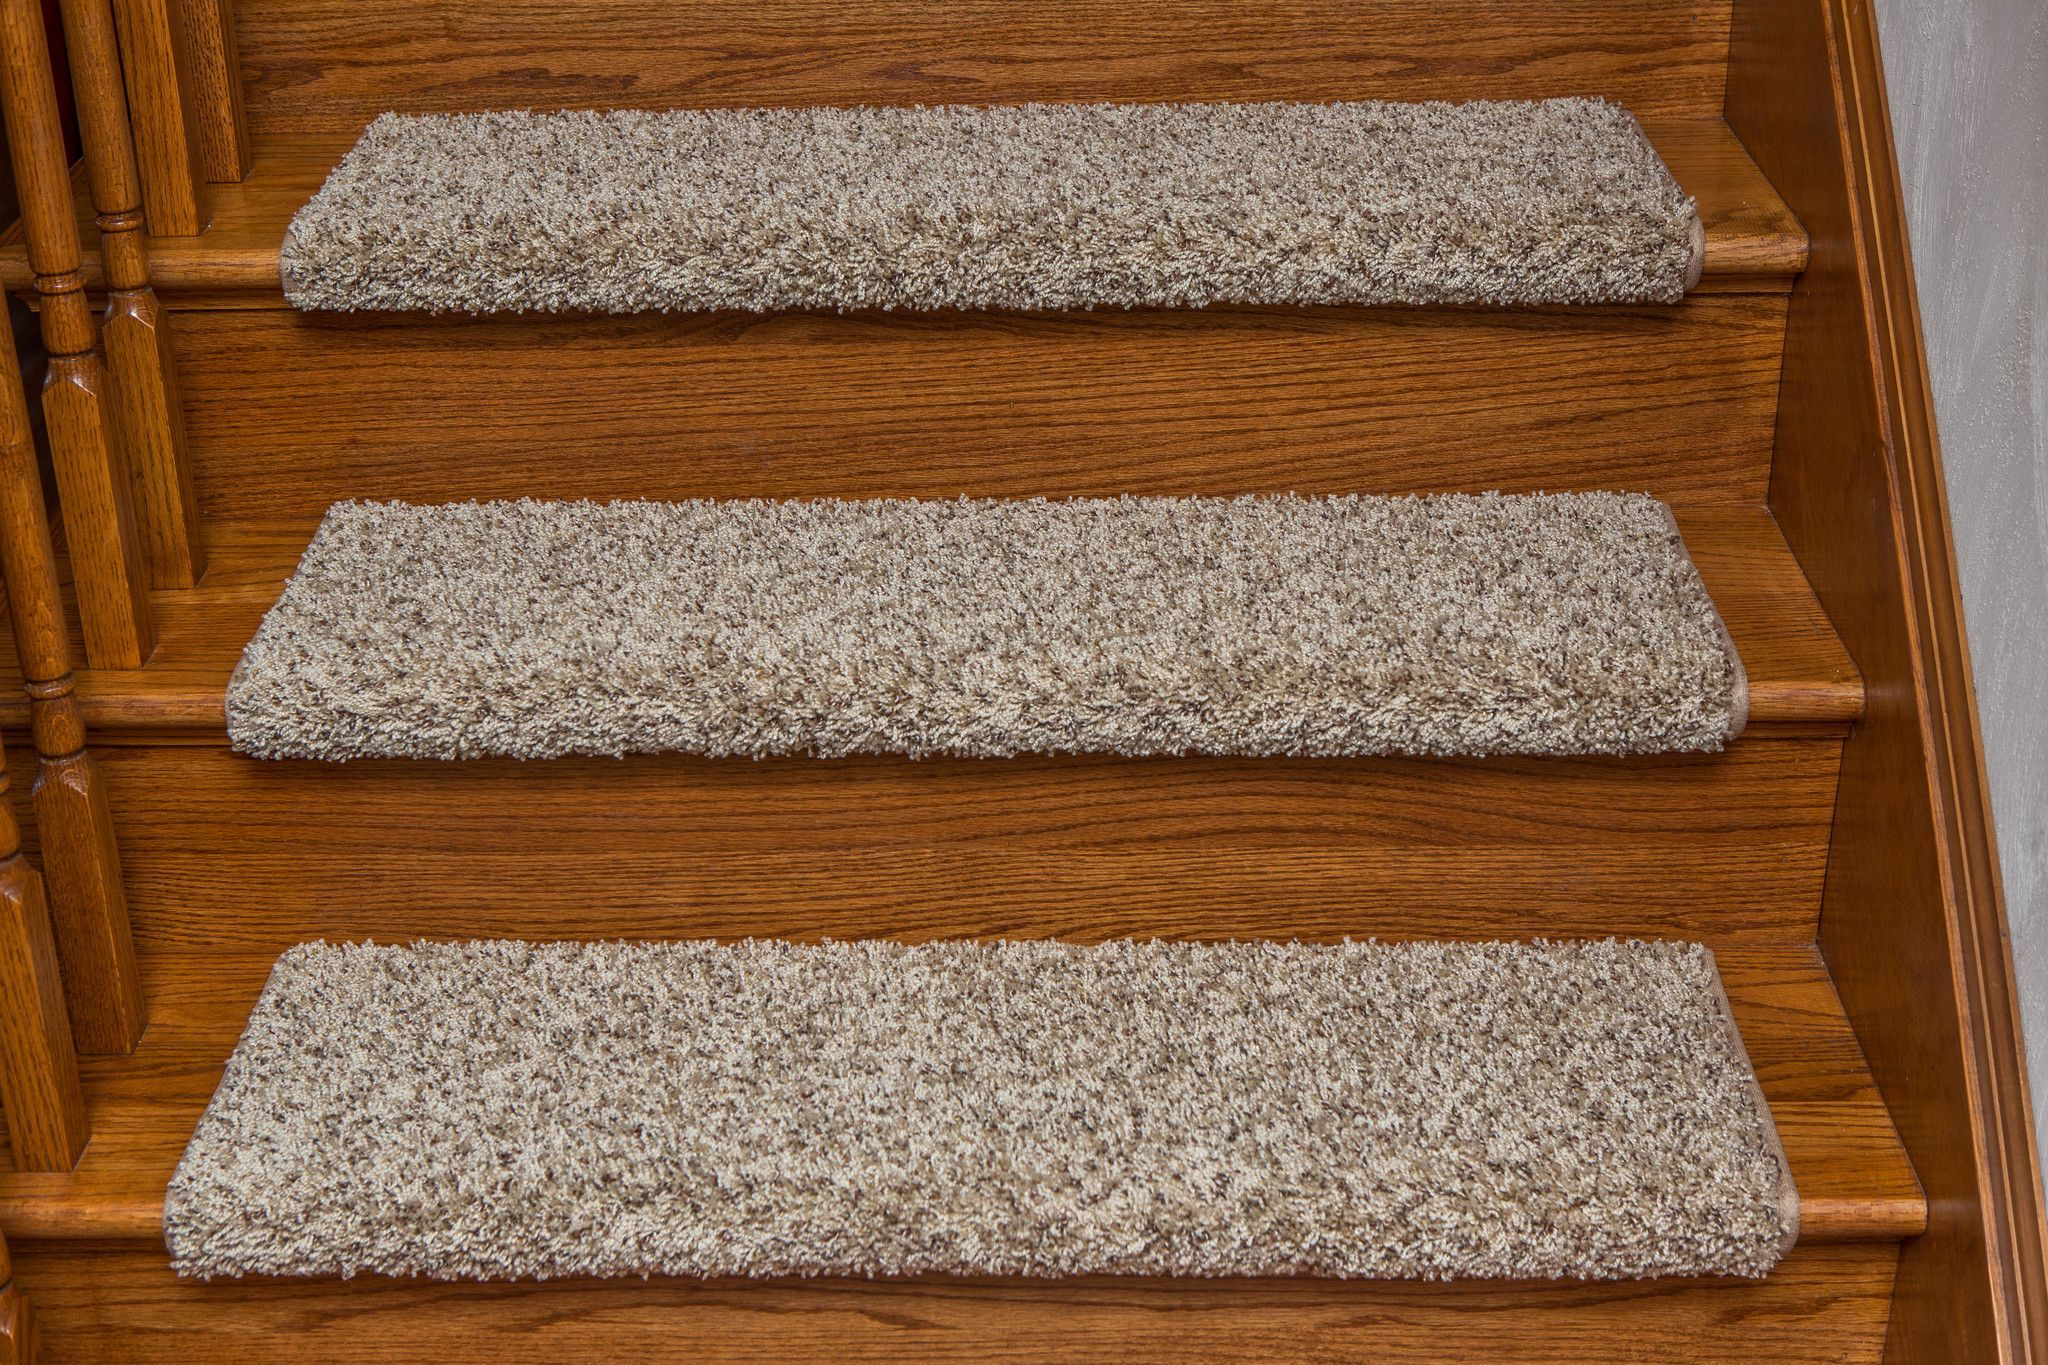 Best Windsor Adhesive Bullnose Carpet Stair Tread With Padding 640 x 480